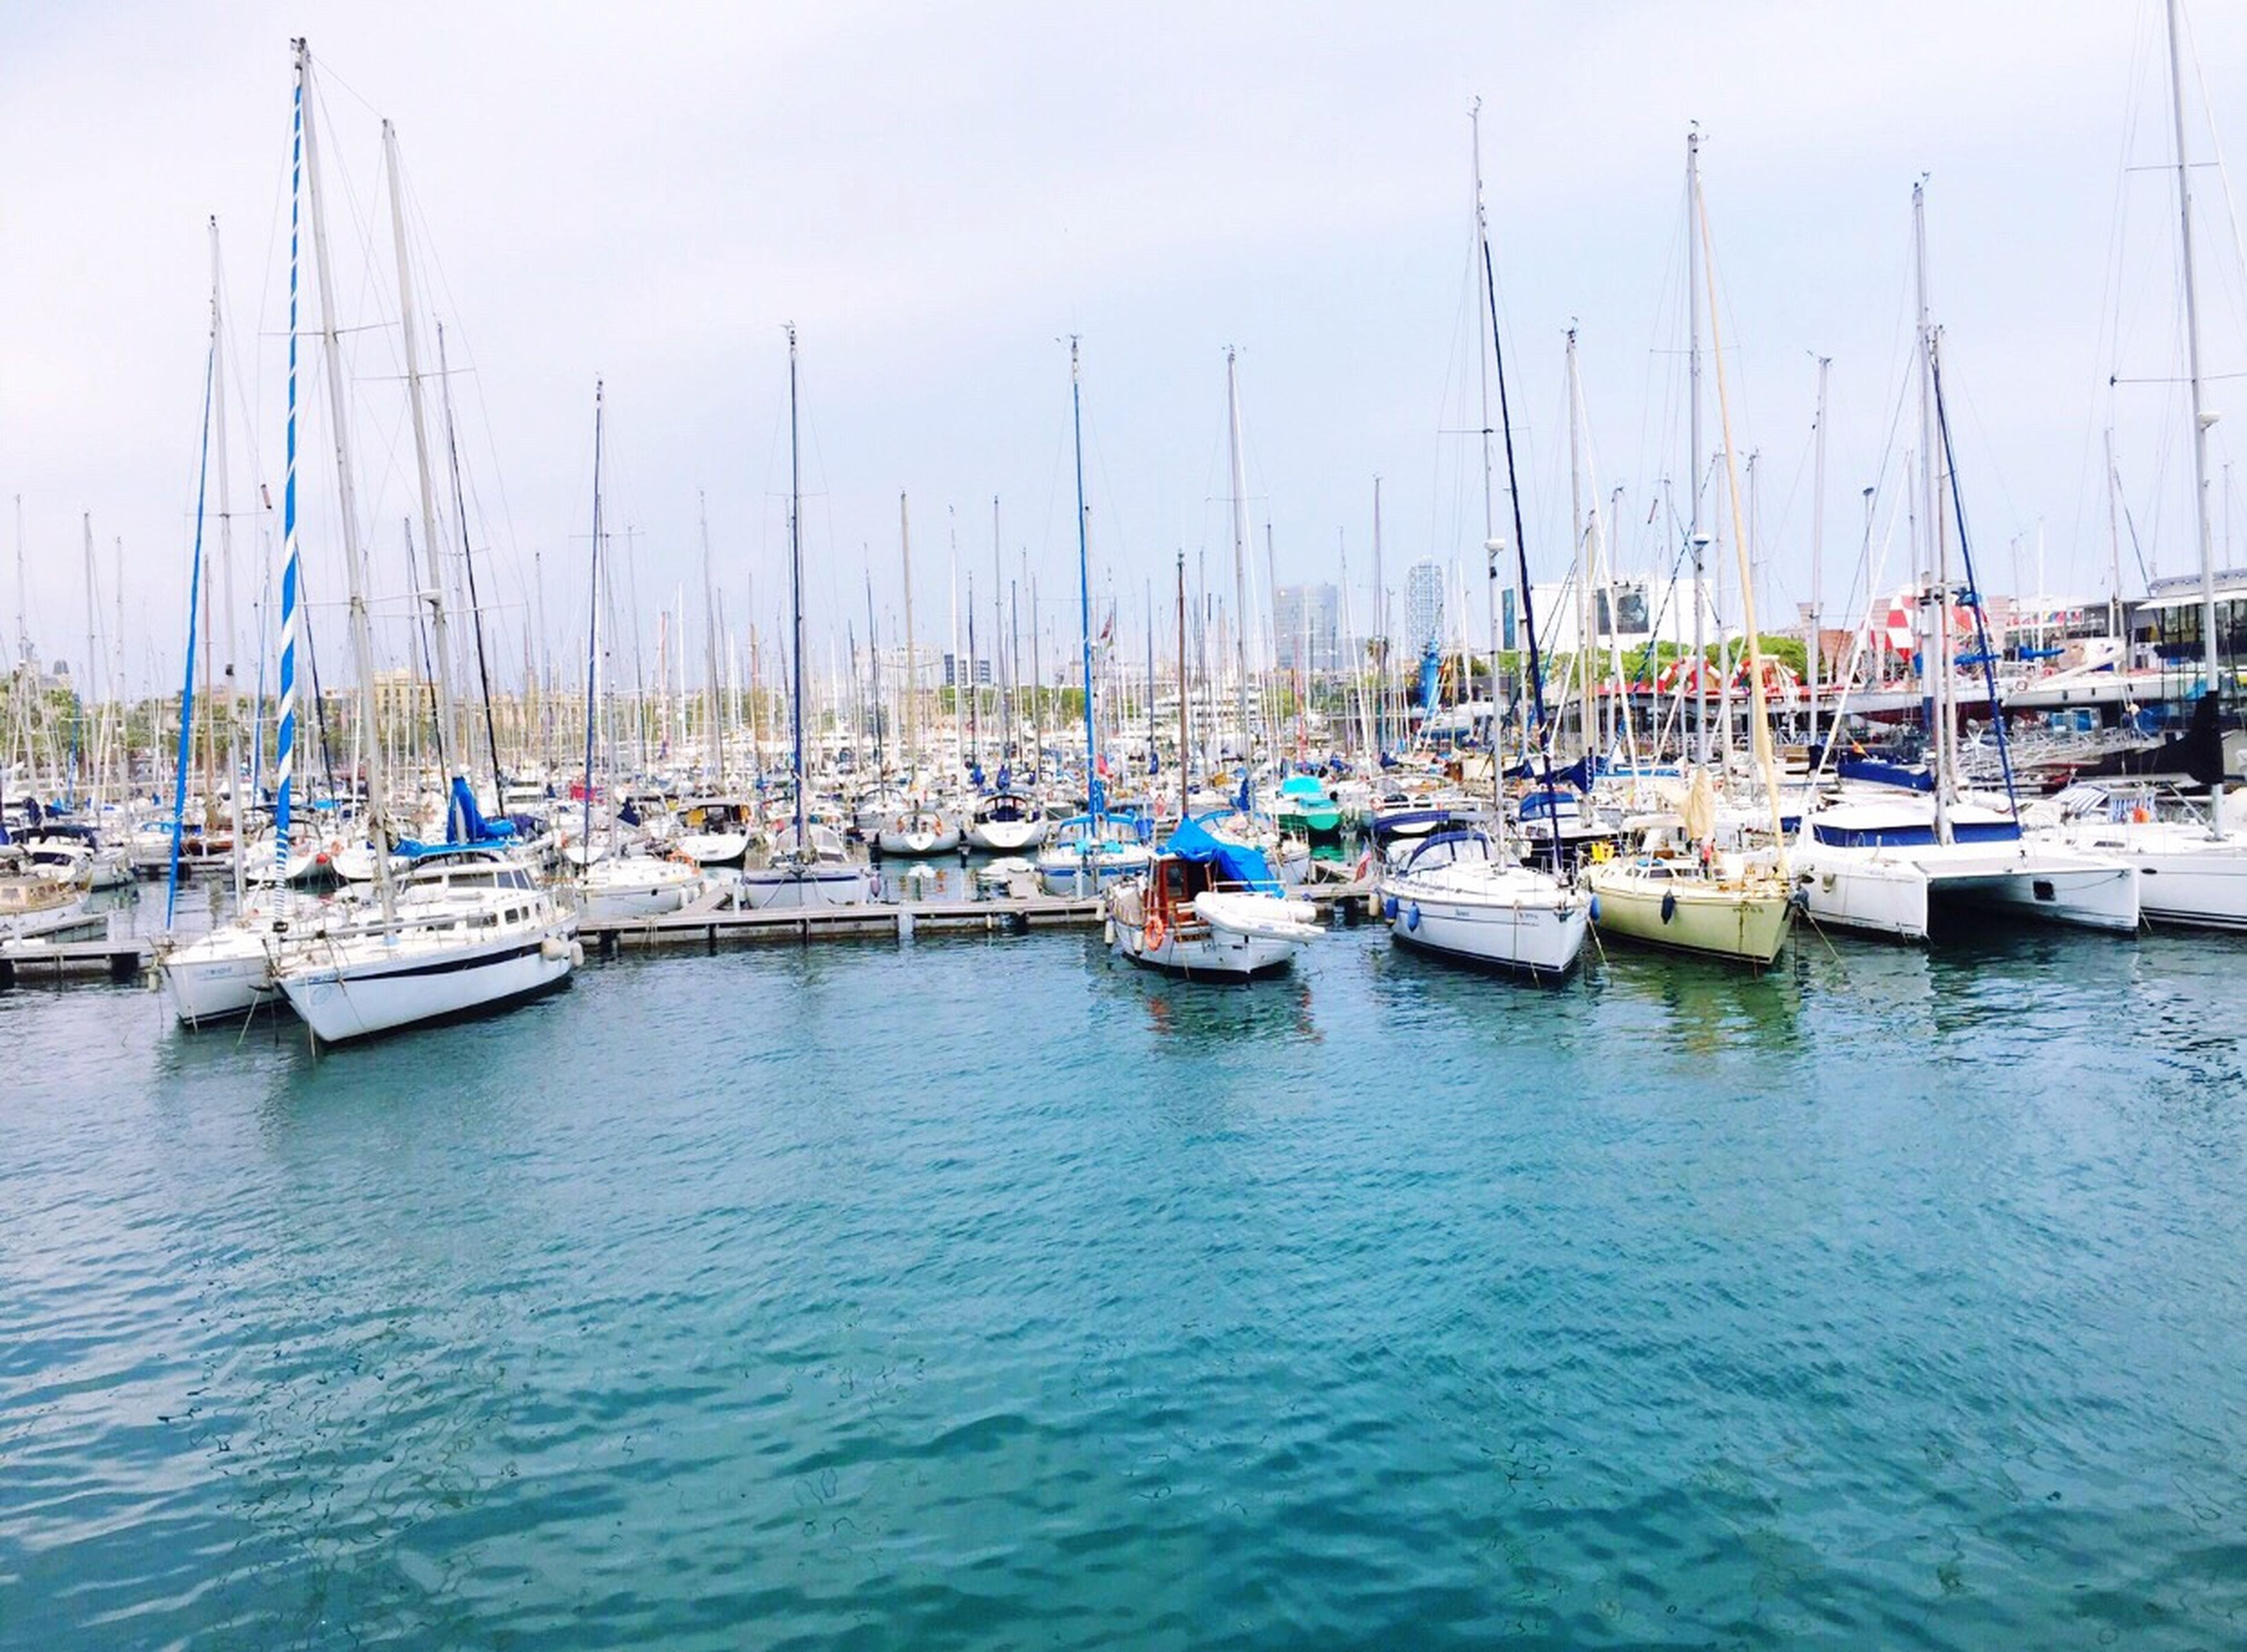 nautical vessel, transportation, moored, boat, mode of transport, water, mast, harbor, sailboat, sea, waterfront, sky, marina, travel, yacht, in a row, outdoors, reflection, day, blue